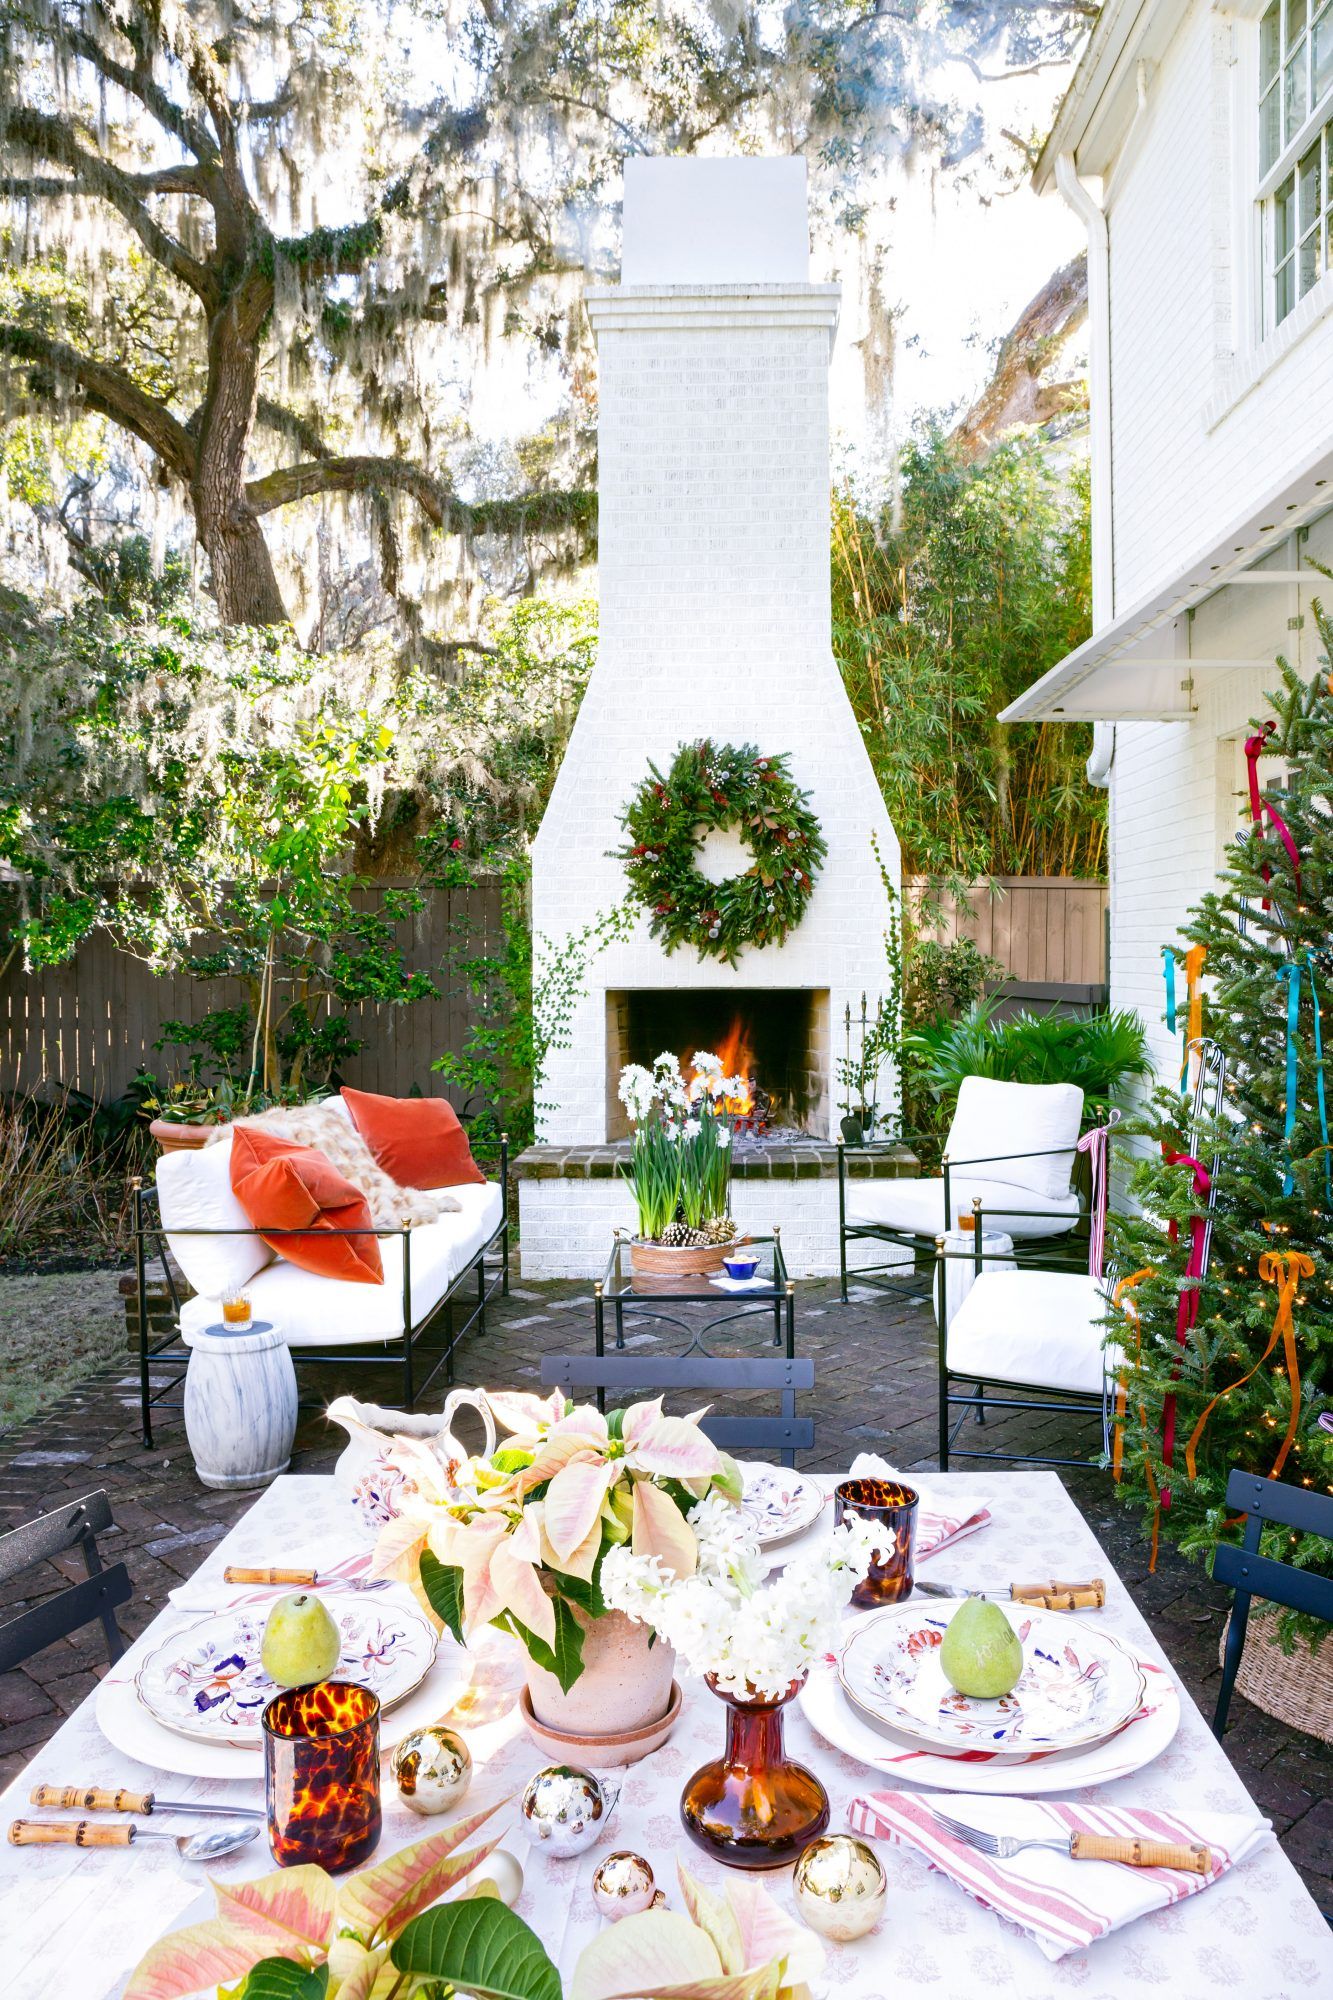 Backyard courtyard with outdoor fireplace and Christmas tree